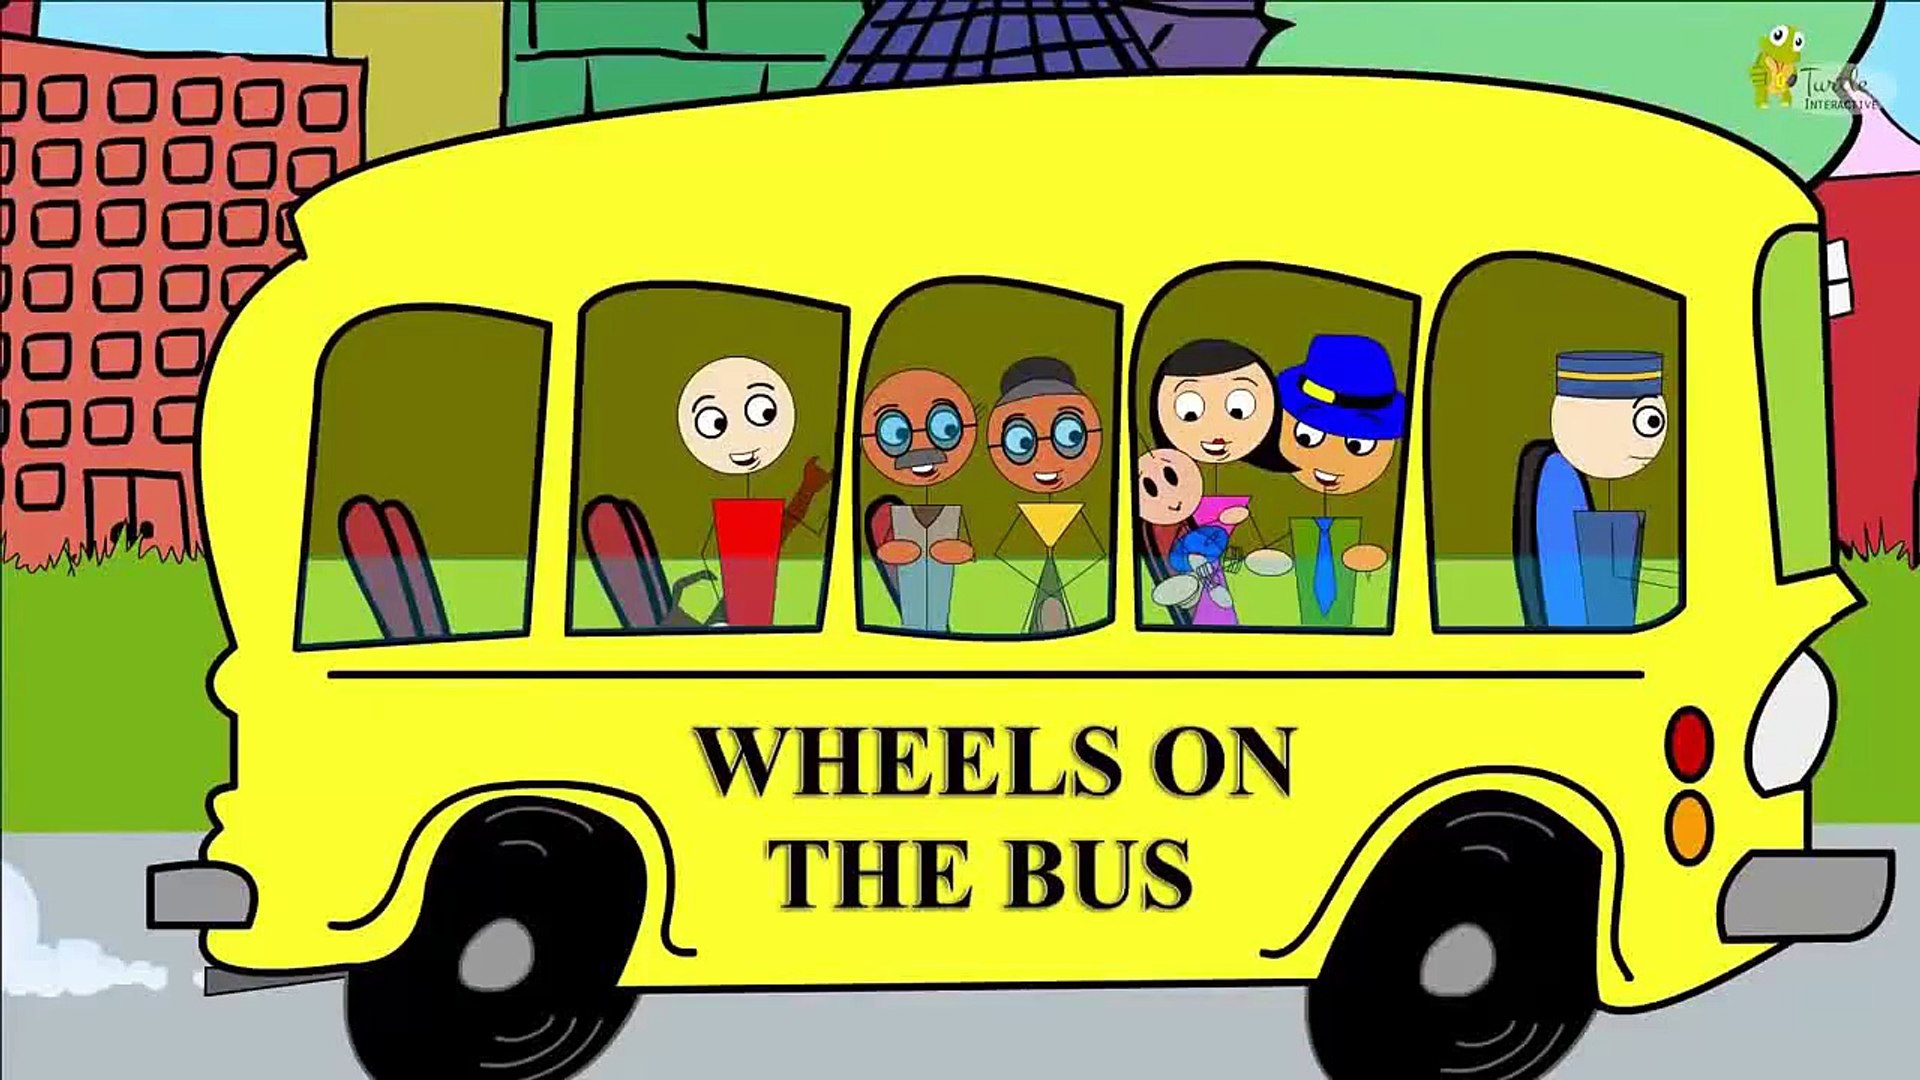 Wheels On The Bus.